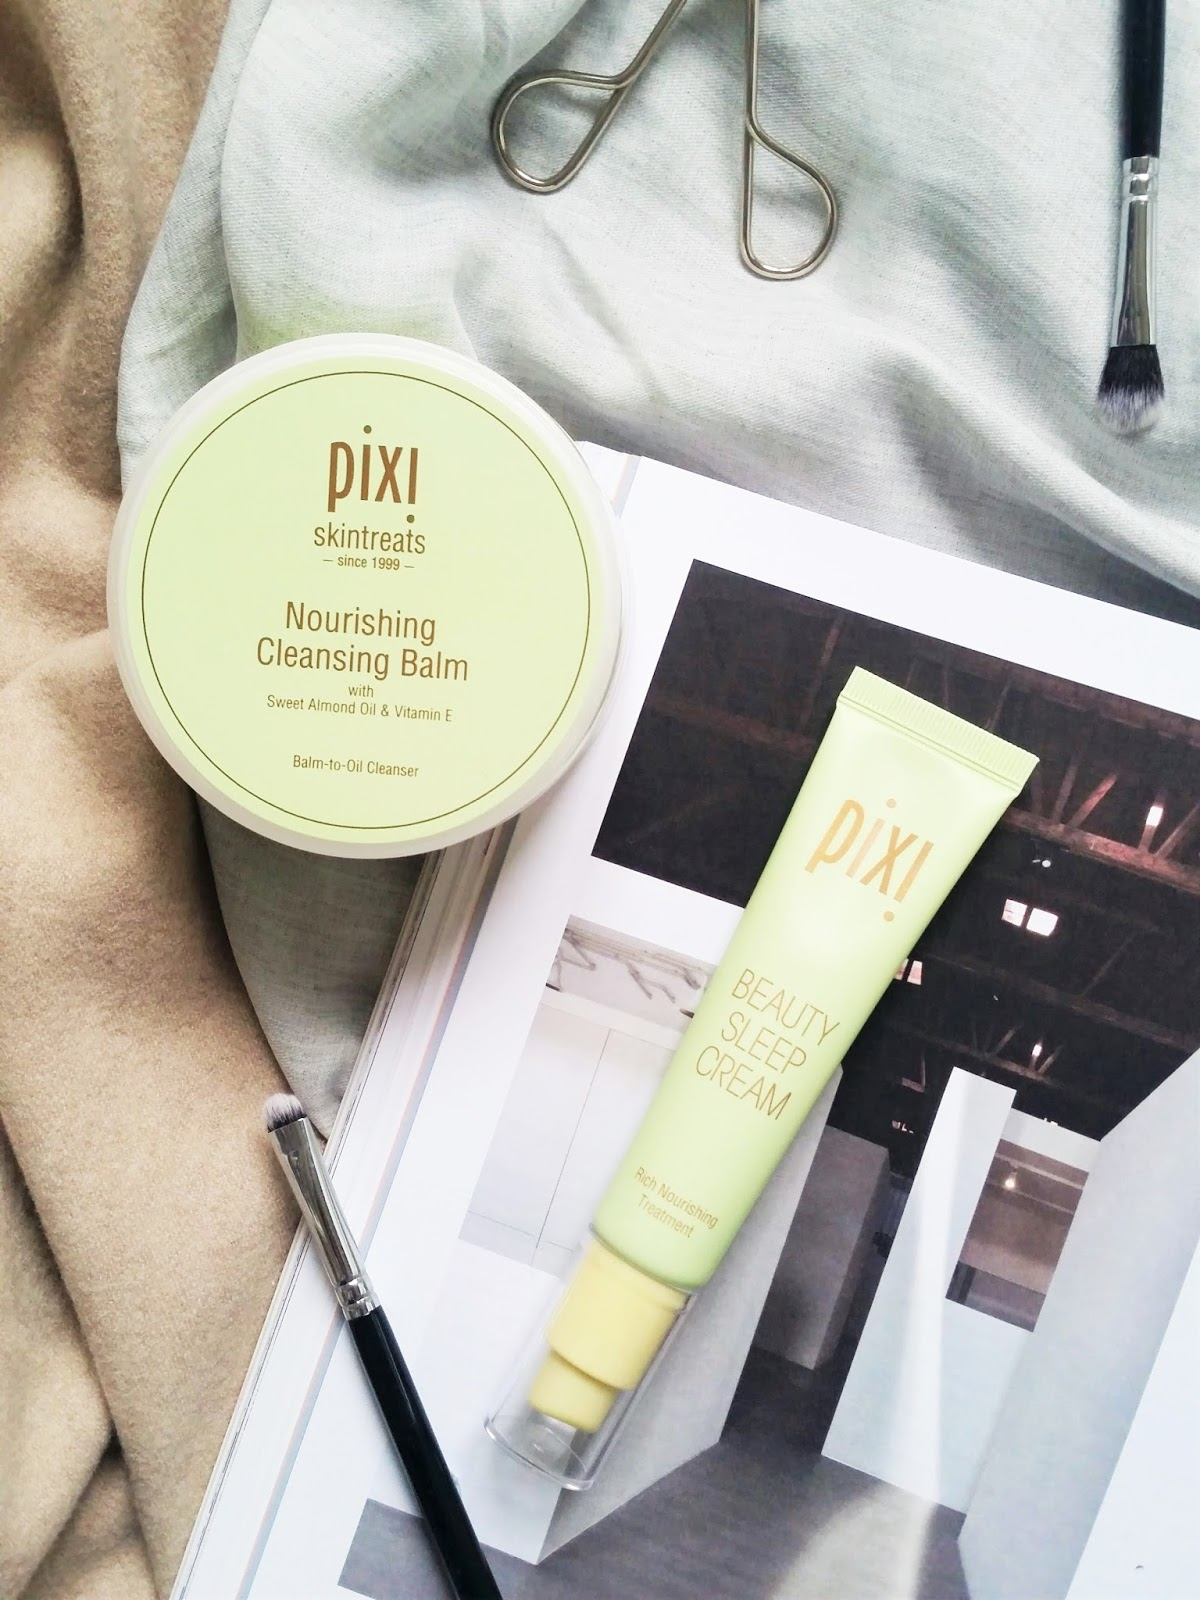 Review of the Pixi Skintreats Nourishing Cleansing Balm and Beauty Sleep Cream